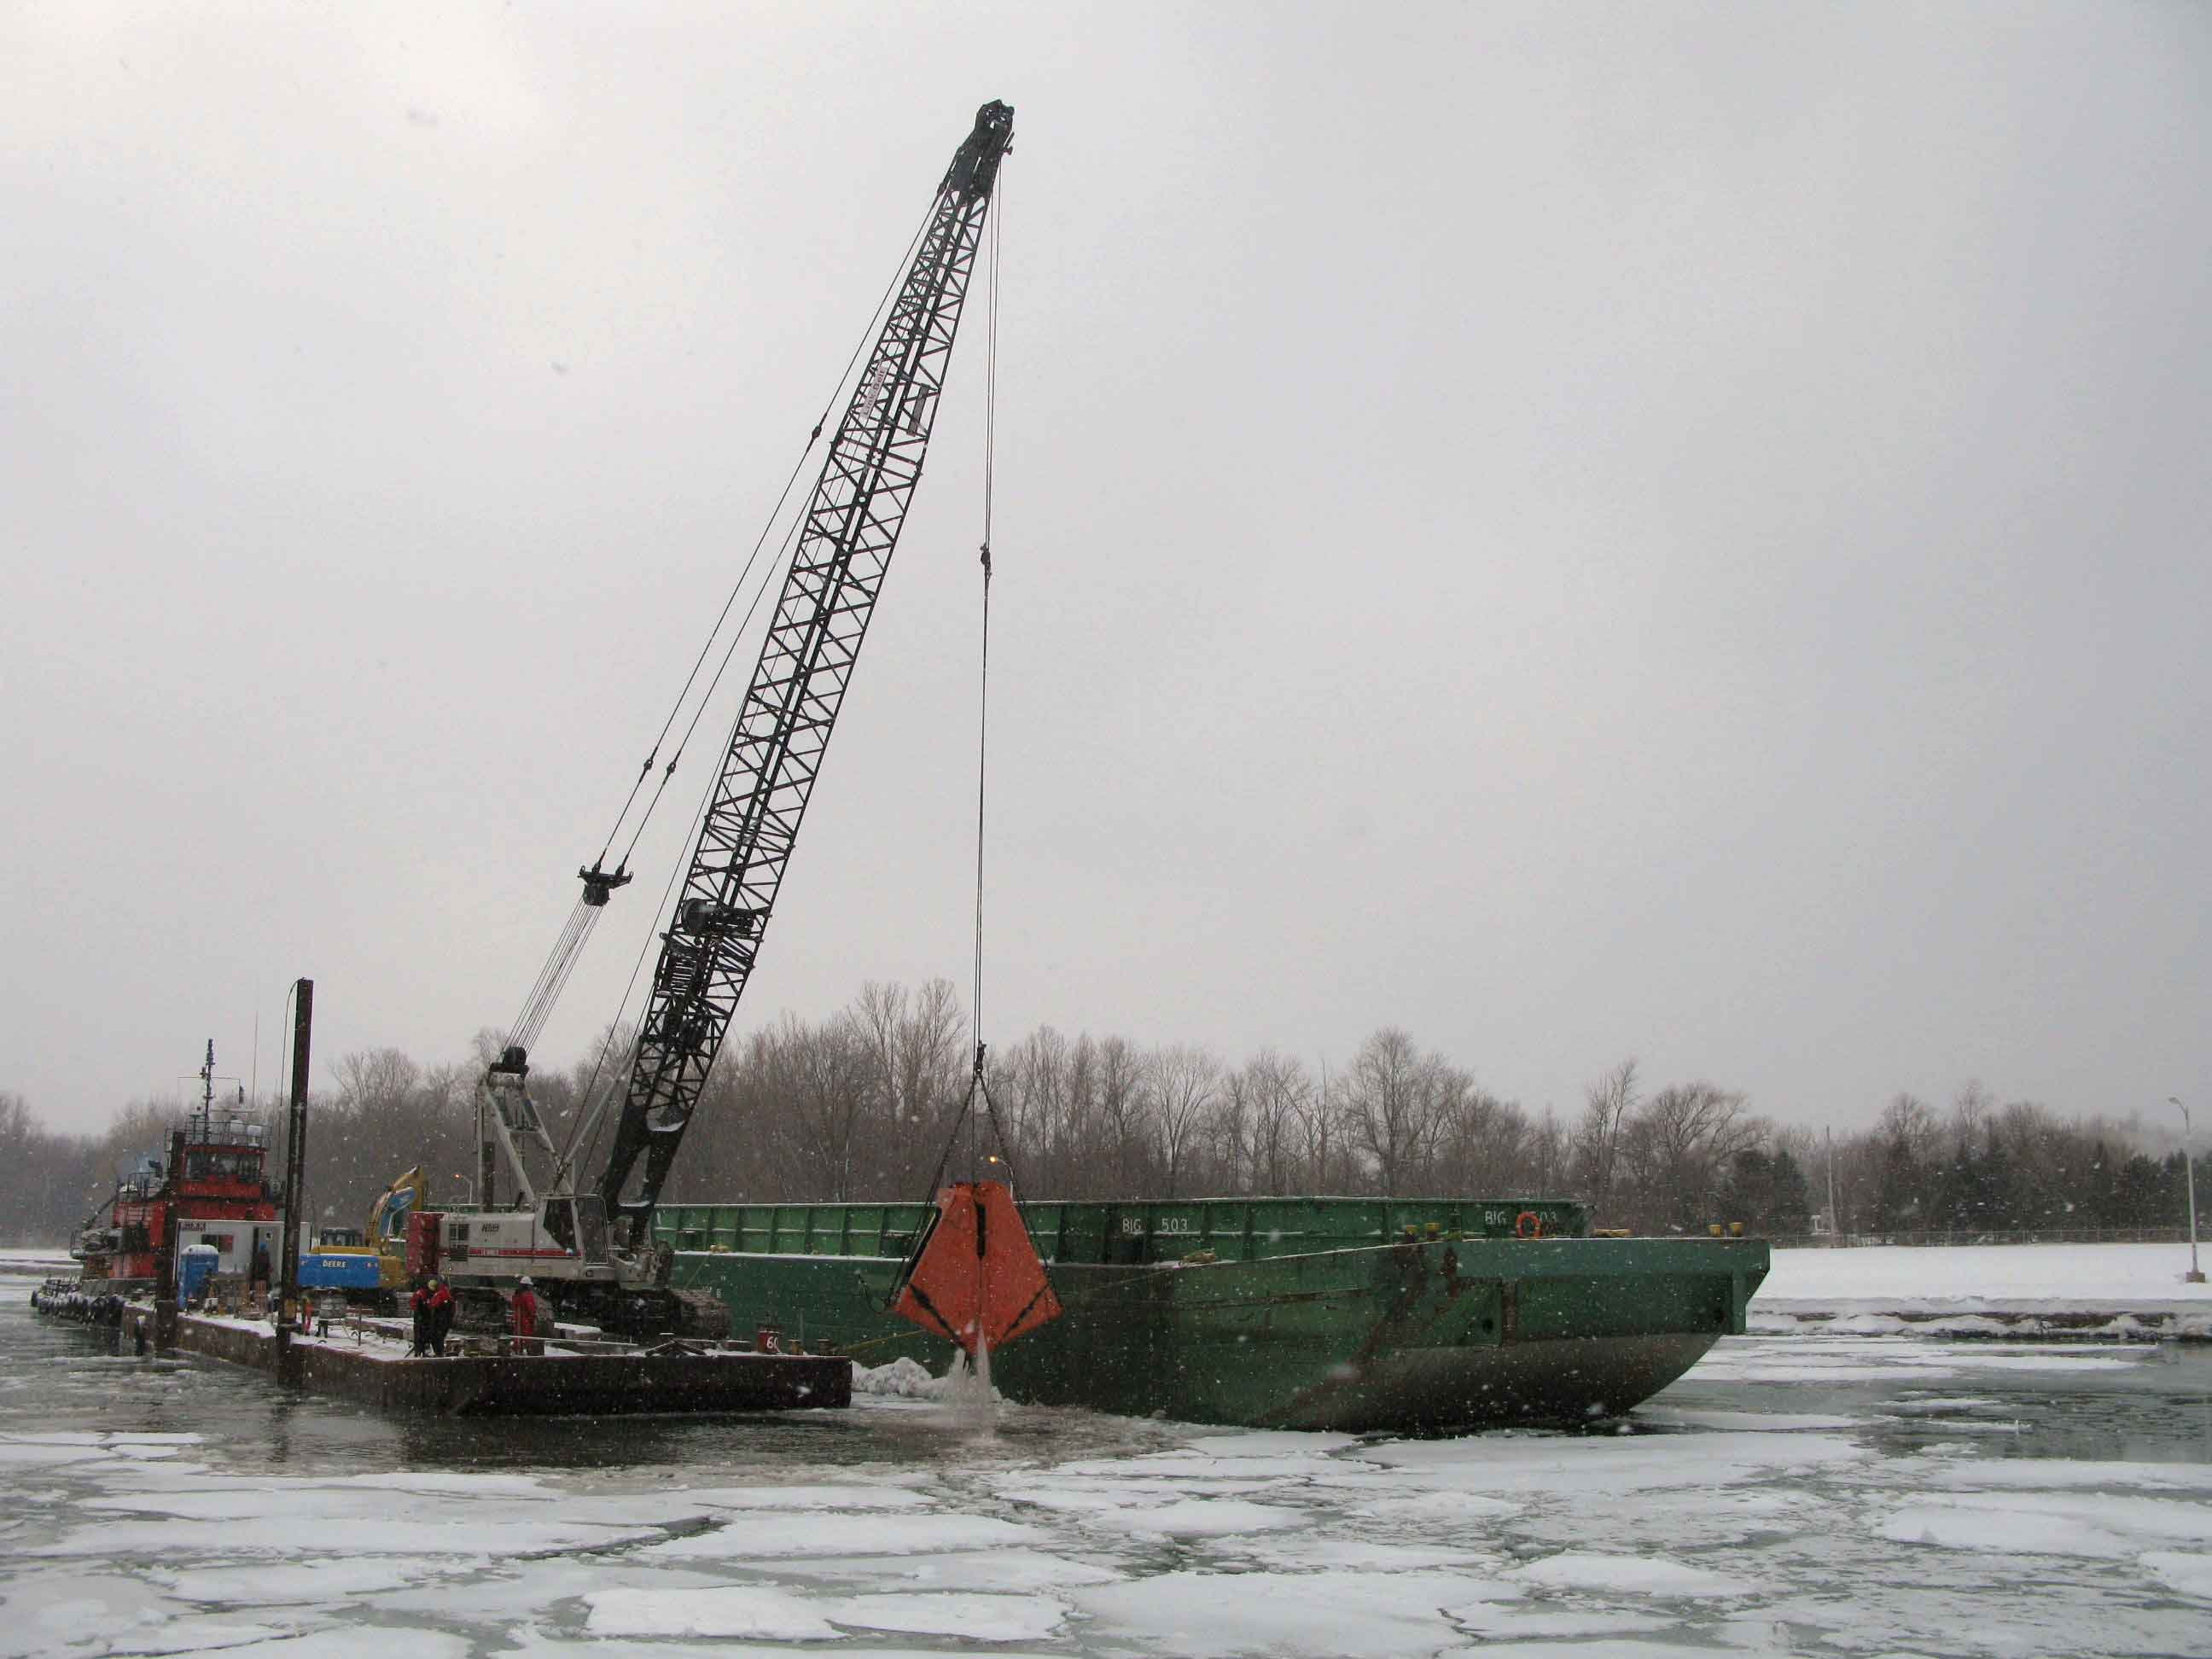 115 ton Link Belt Crane with Cable Arm Bucket loading barge. Equipment on 500 ton work barge converted to a spud barge